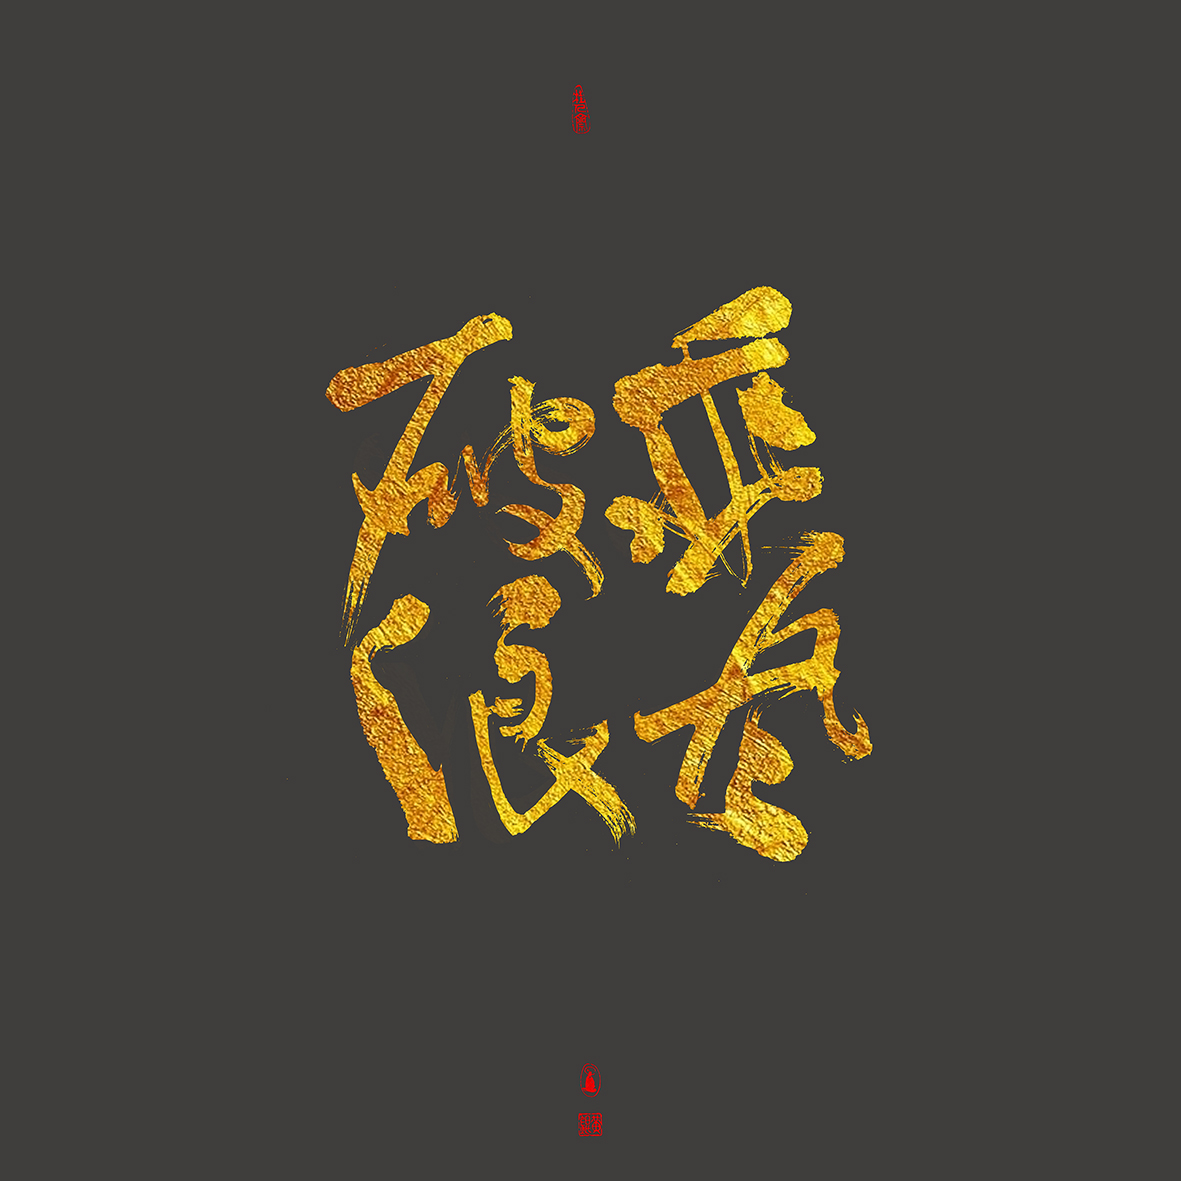 7P '乘风破浪' Chinese font design of Chinese phrases